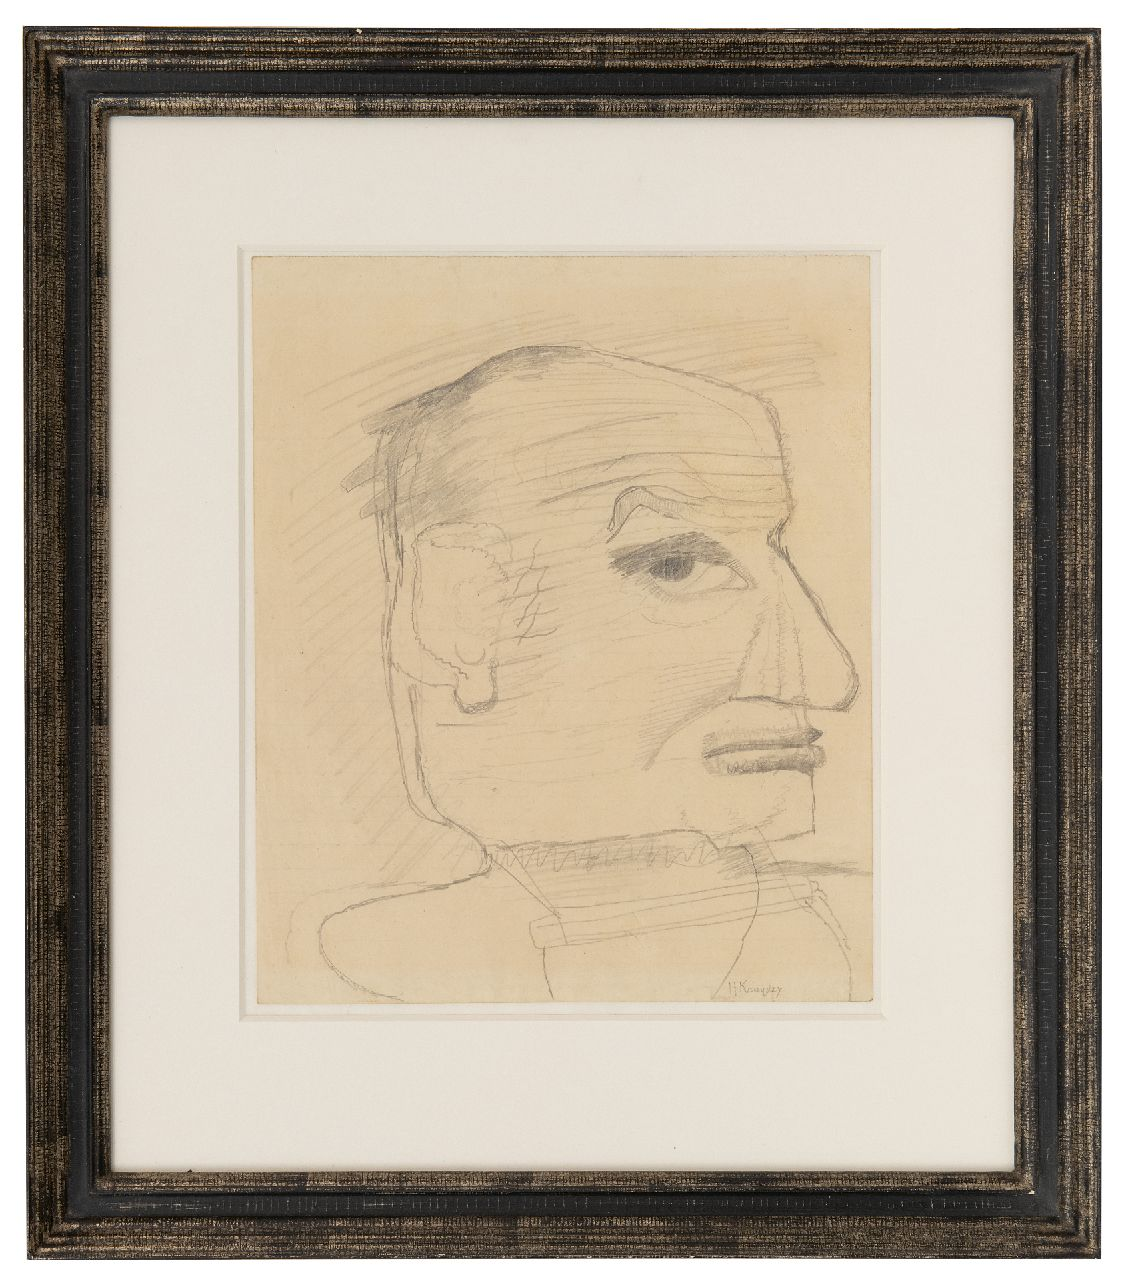 Kruyder H.J.  | 'Herman' Justus Kruyder | Watercolours and drawings offered for sale | Self-portrait (probably), pencil on paper 25.0 x 21.0 cm, signed l.r.